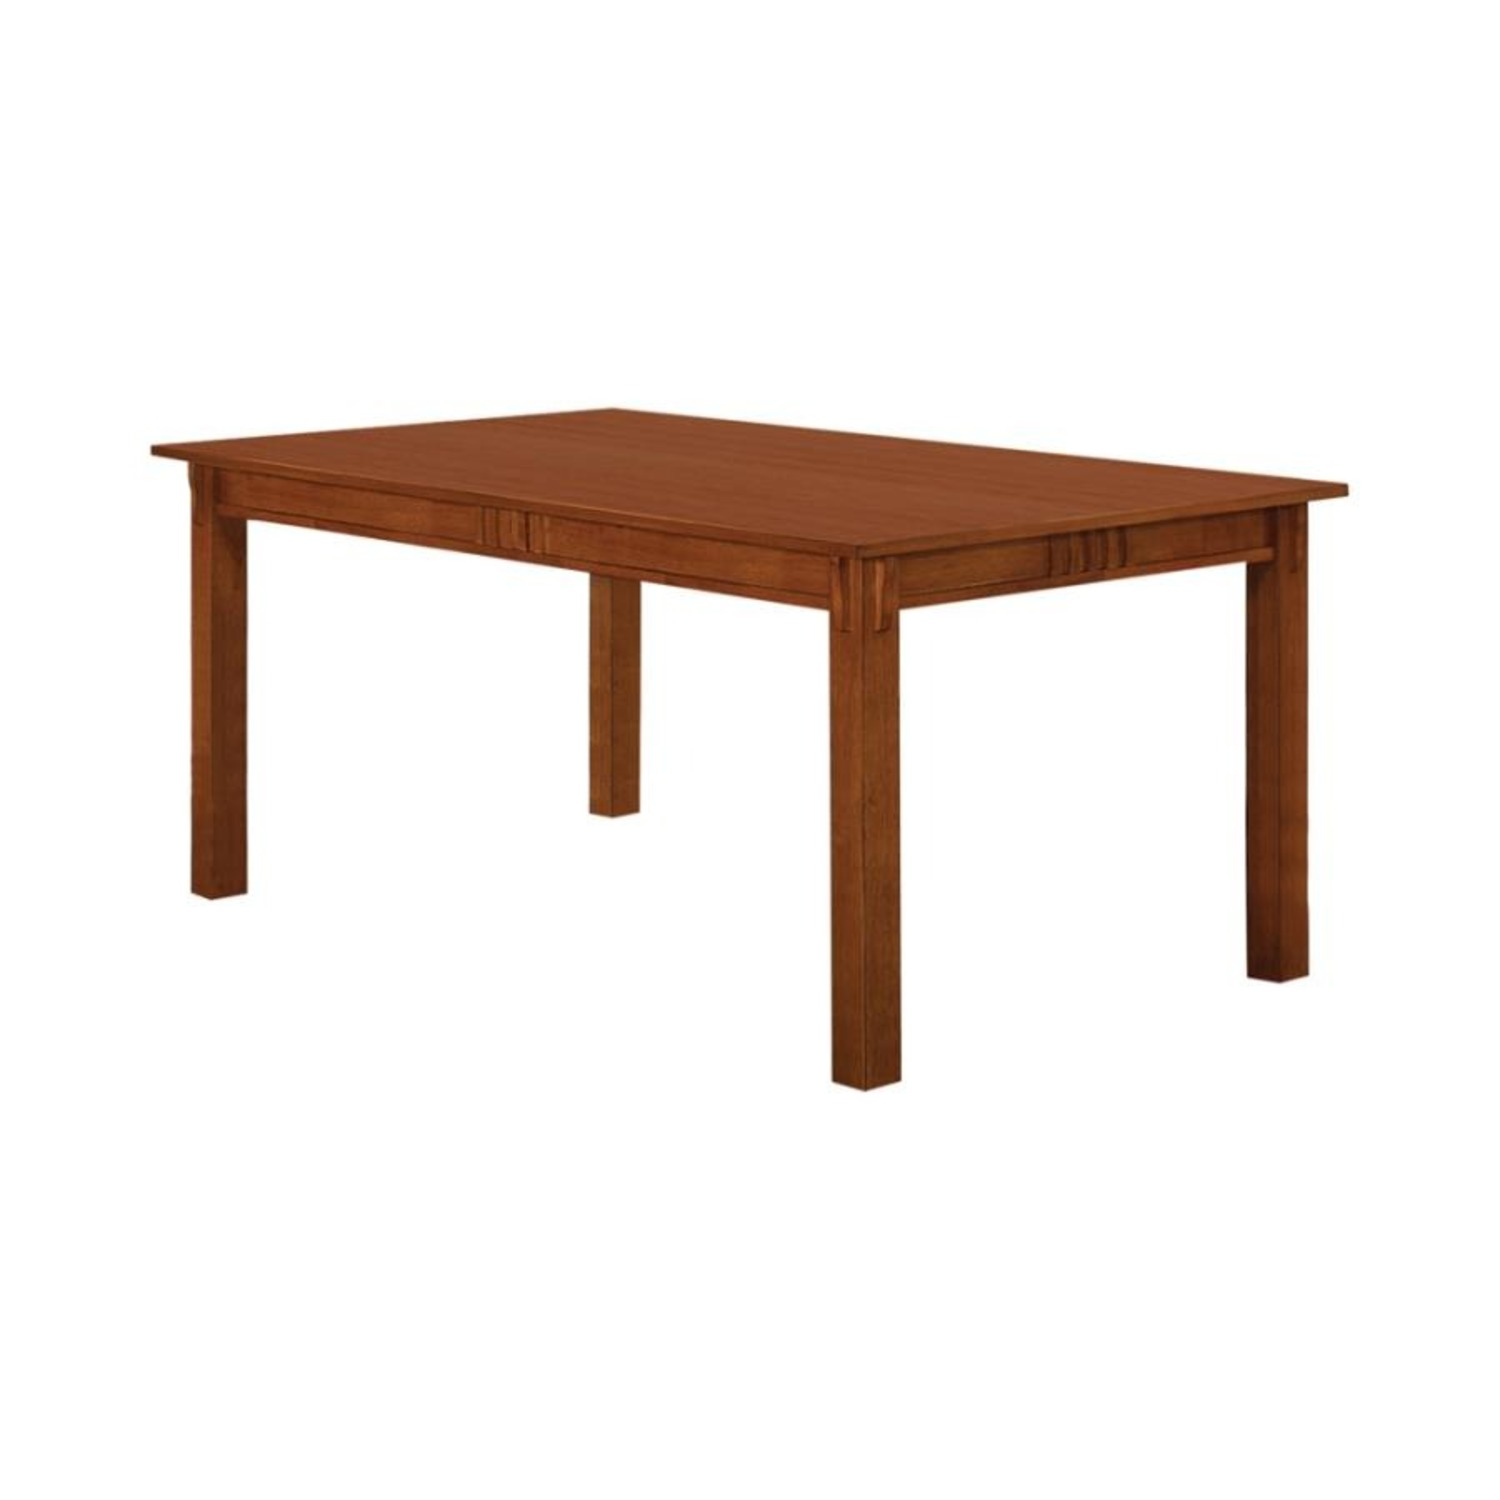 Dining Table In Hardwood Sienna Brown Finish - image-1